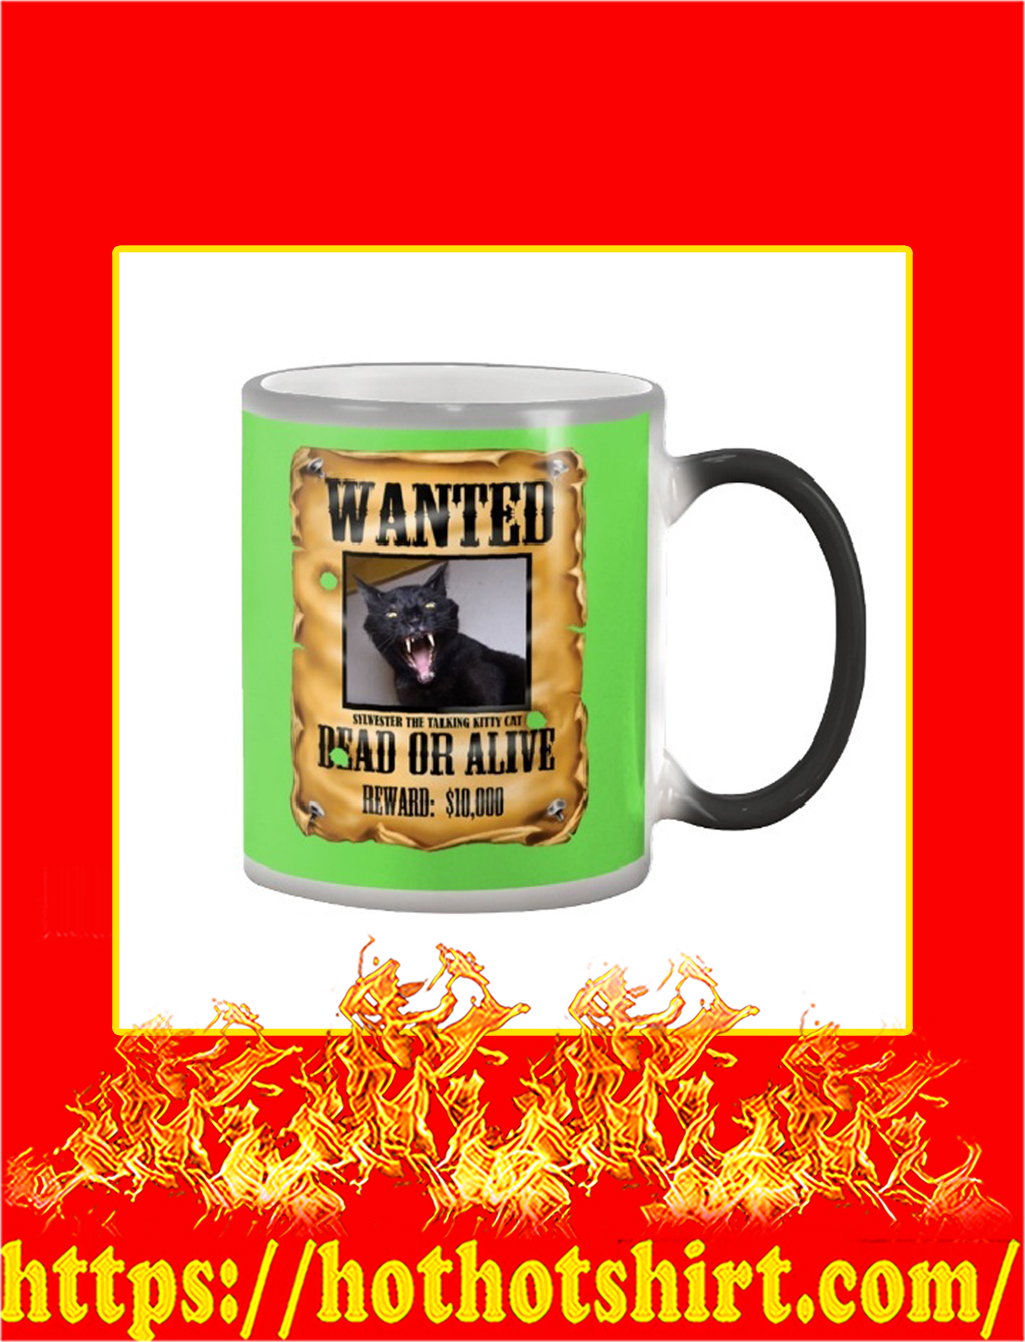 Wanted Sylvester The Talking Kitty Cat Dead Or Alive Mug- kiwi